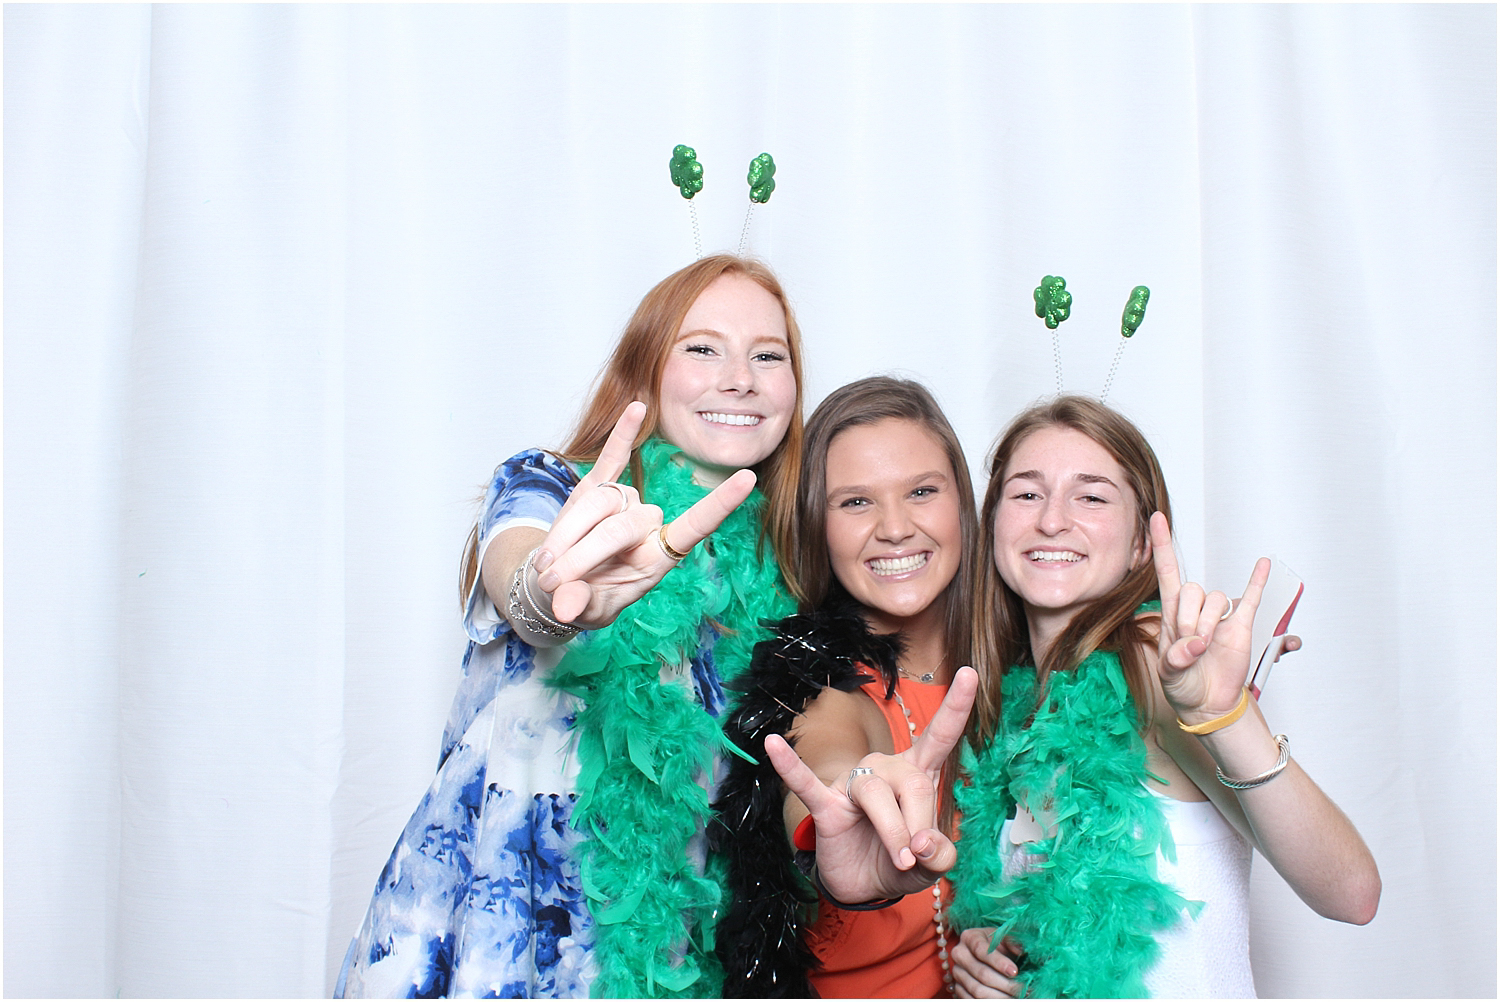 Austin Photo Booth - Kappa Delta Bid Day-8.jpg